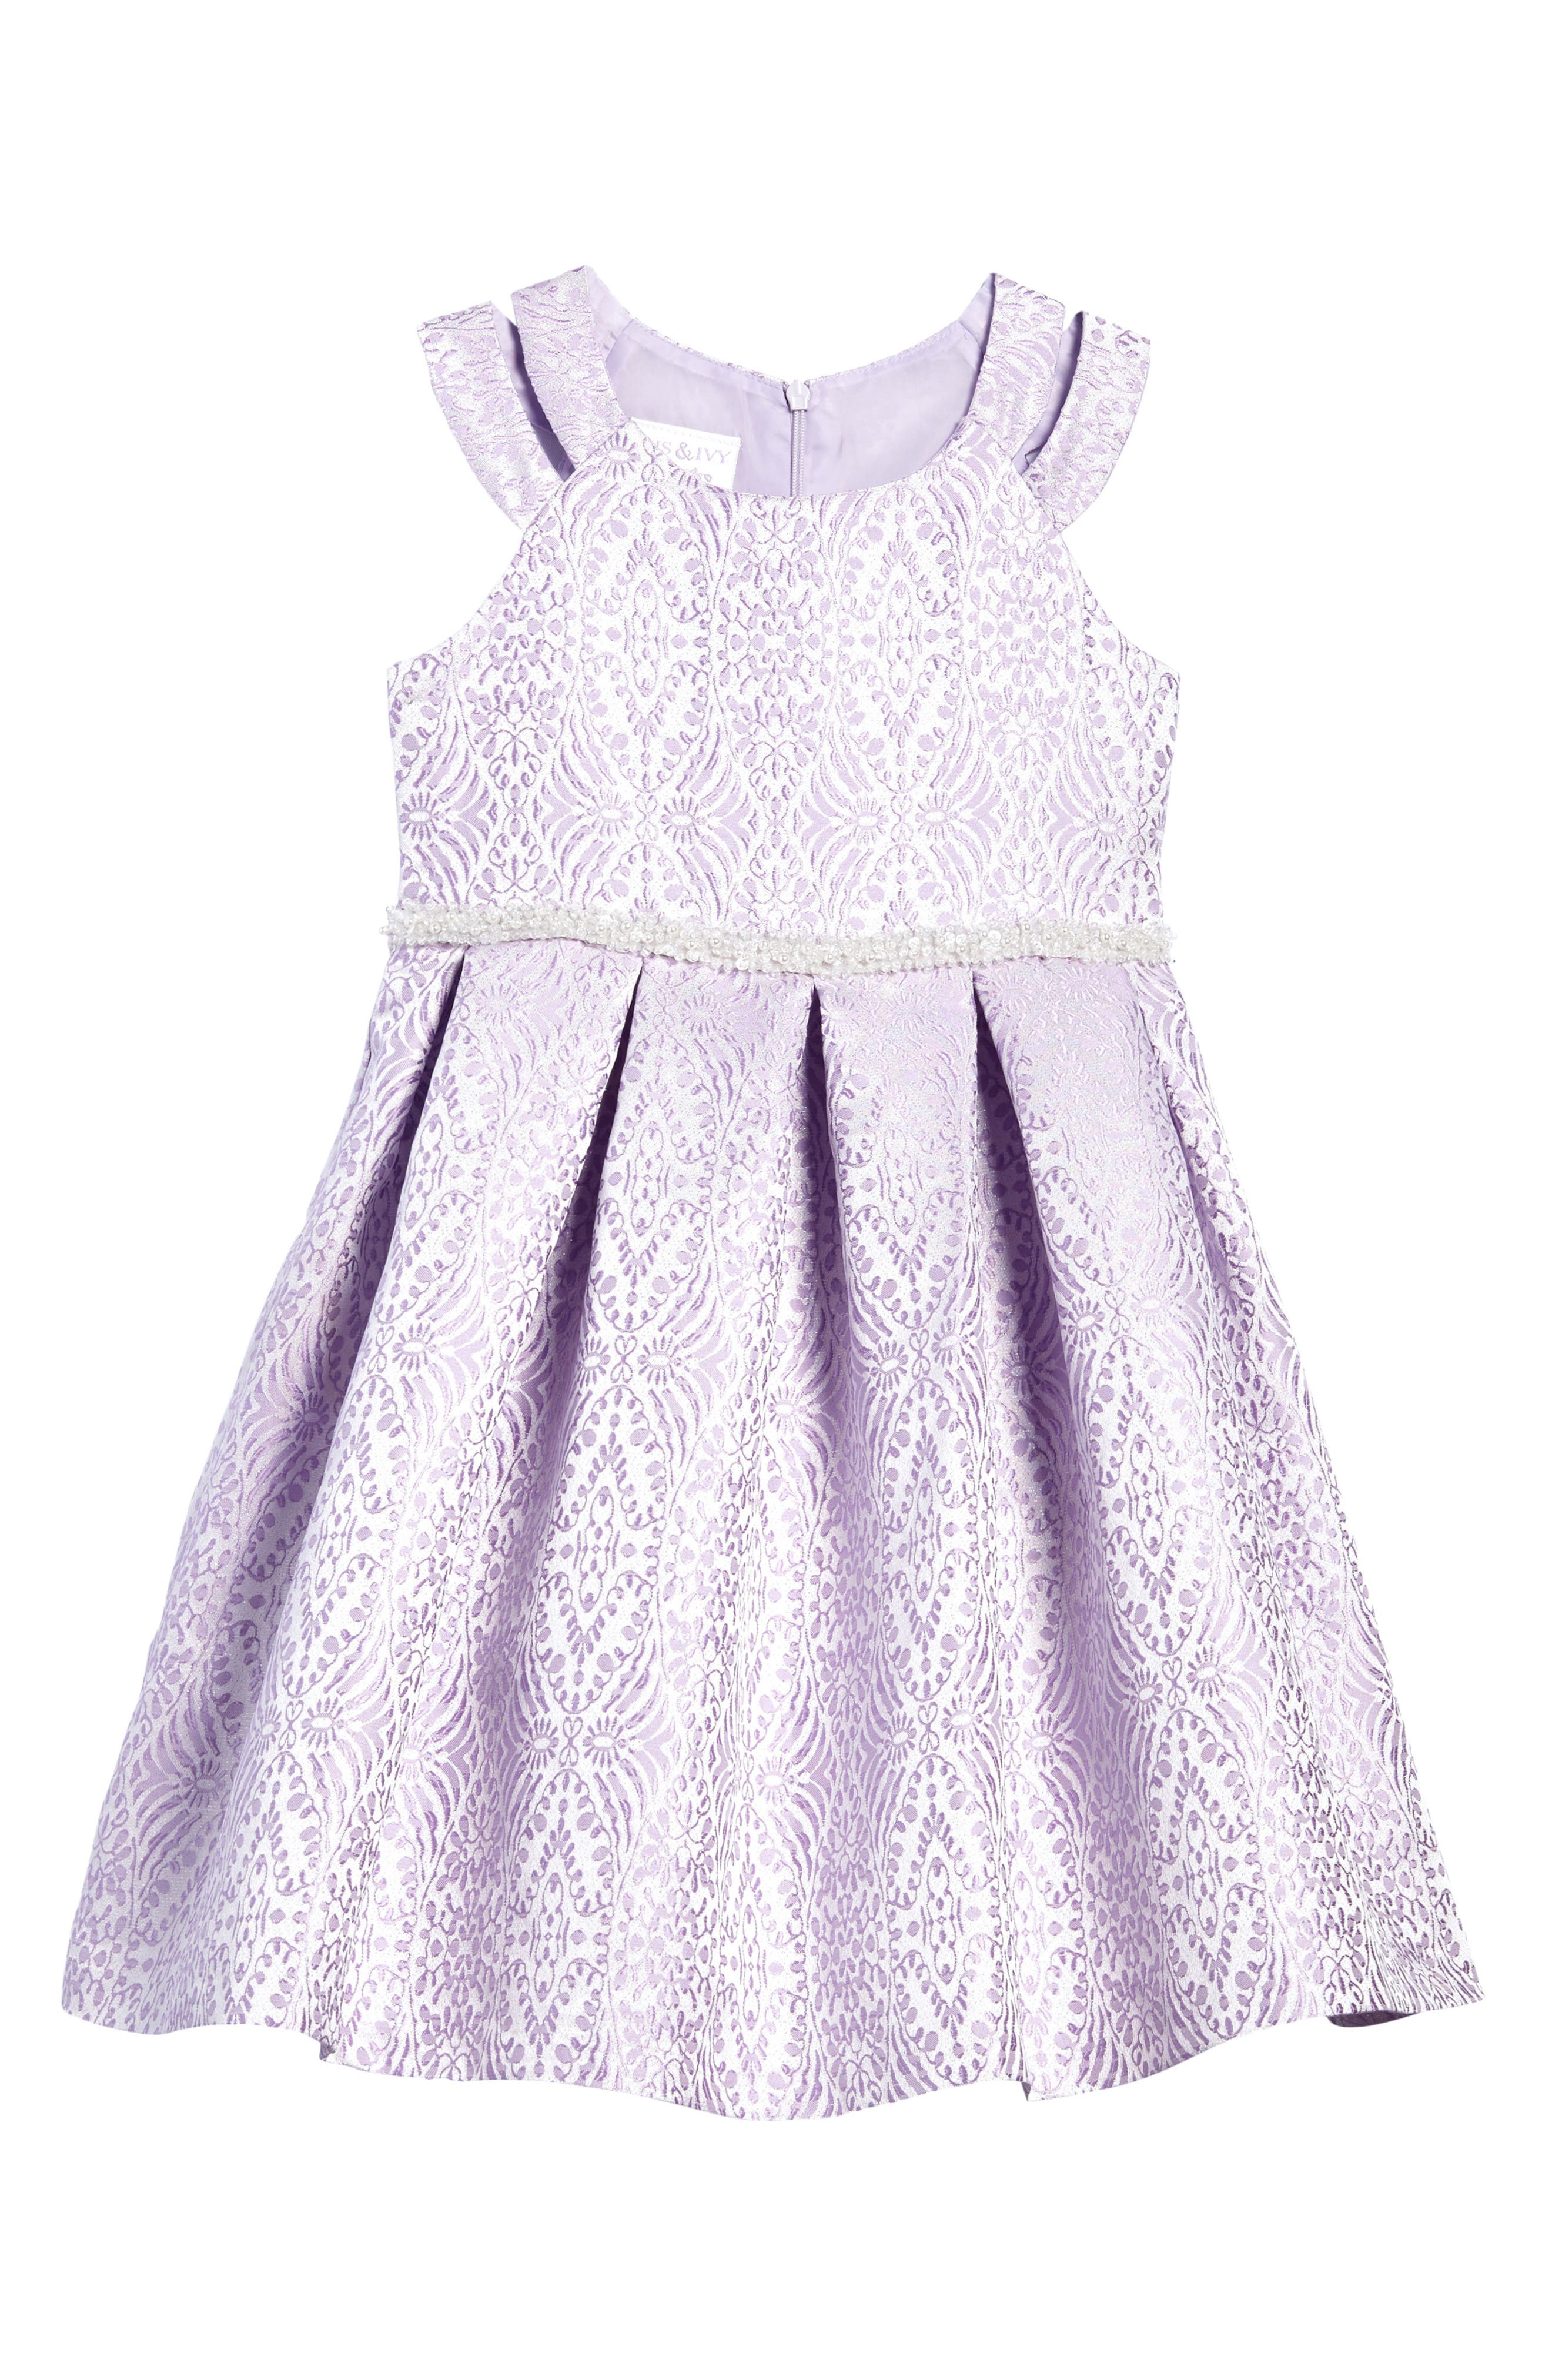 Jacquard Fit & Flare Dress,                         Main,                         color, Lavendar